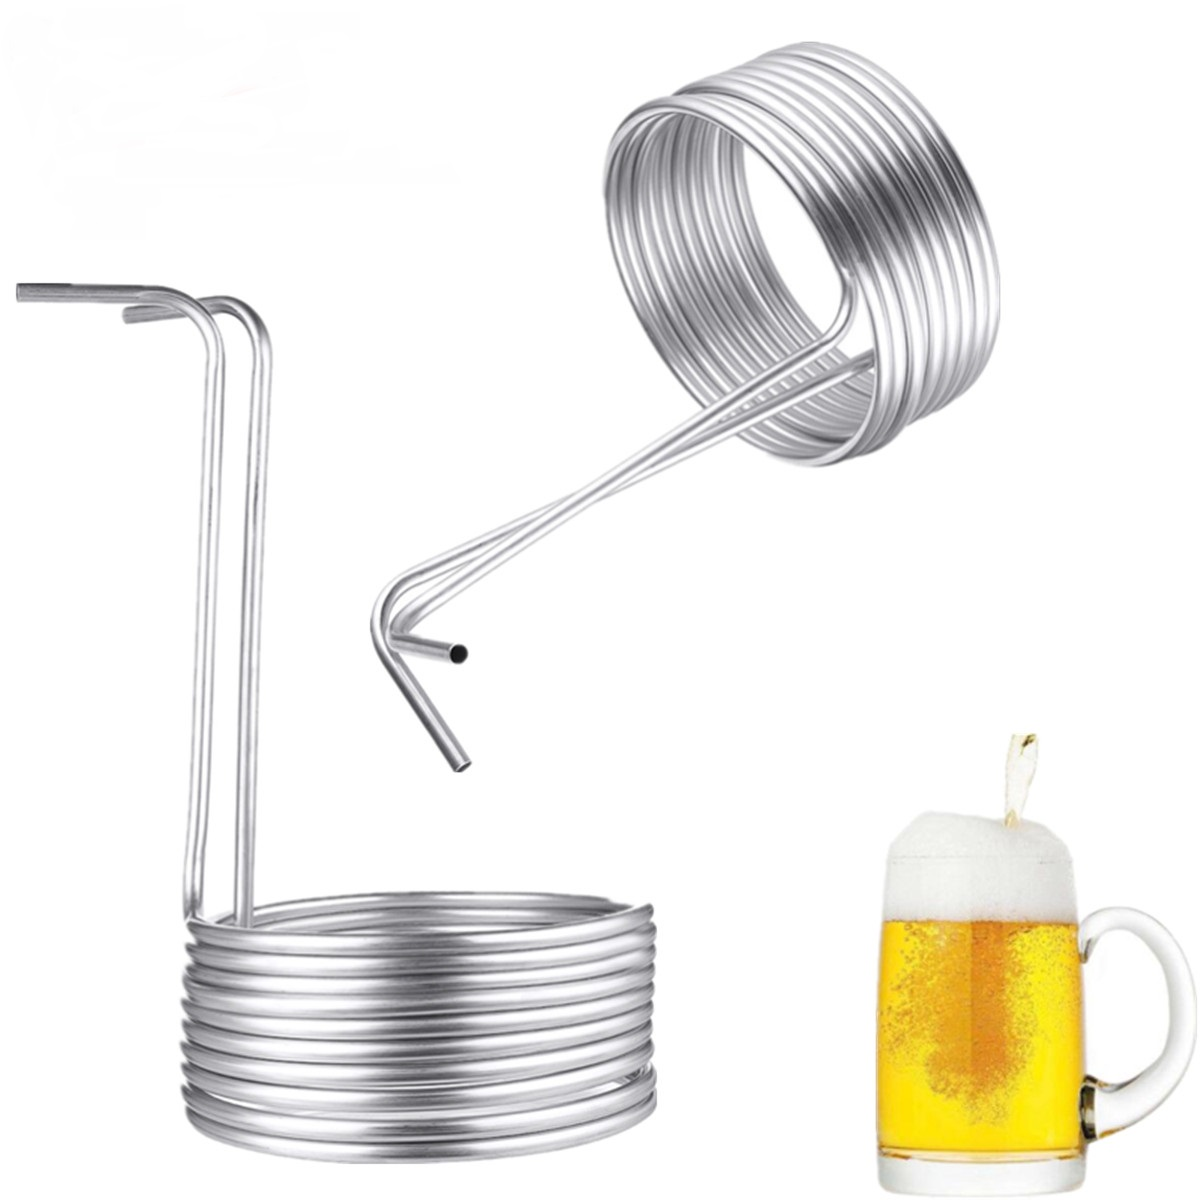 5 Sizes Stainless Steel Immersion Wort Chiller Tube For Home Brewing Super Efficient Wort Chiller Home Wine Making Machine Part